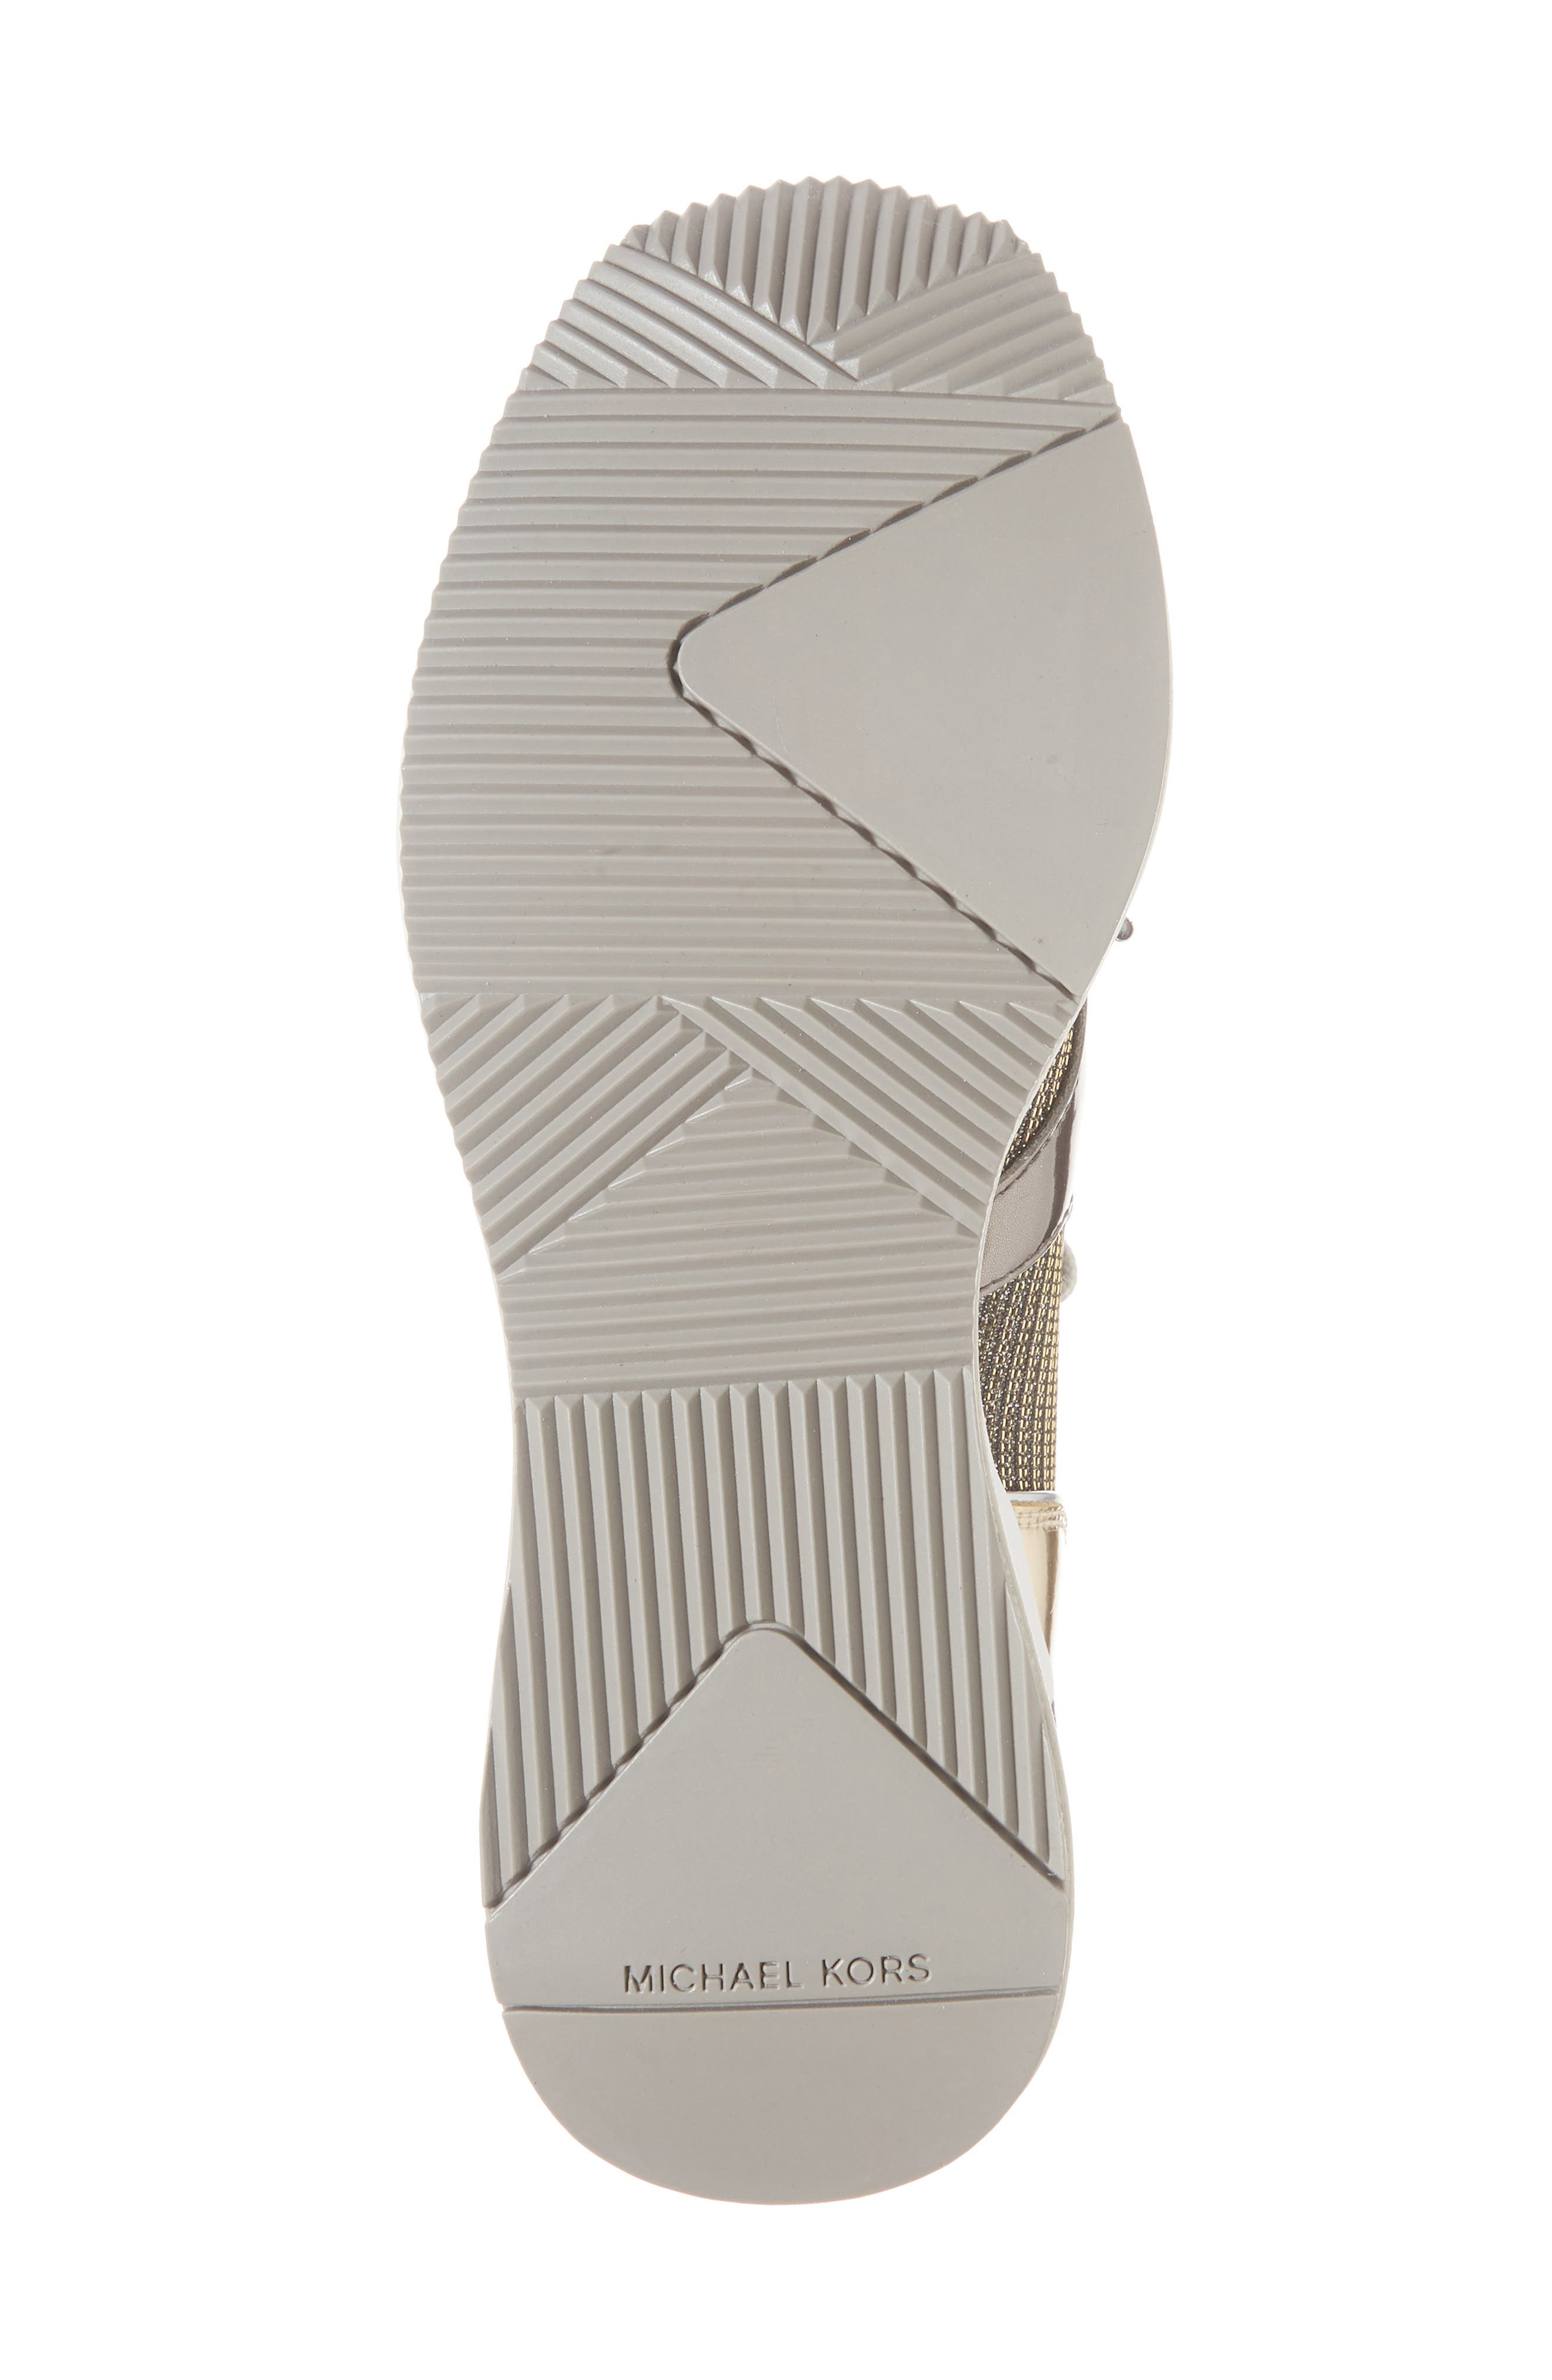 Hilda Wedge Sneaker,                             Alternate thumbnail 6, color,                             Silver Knit Fabric